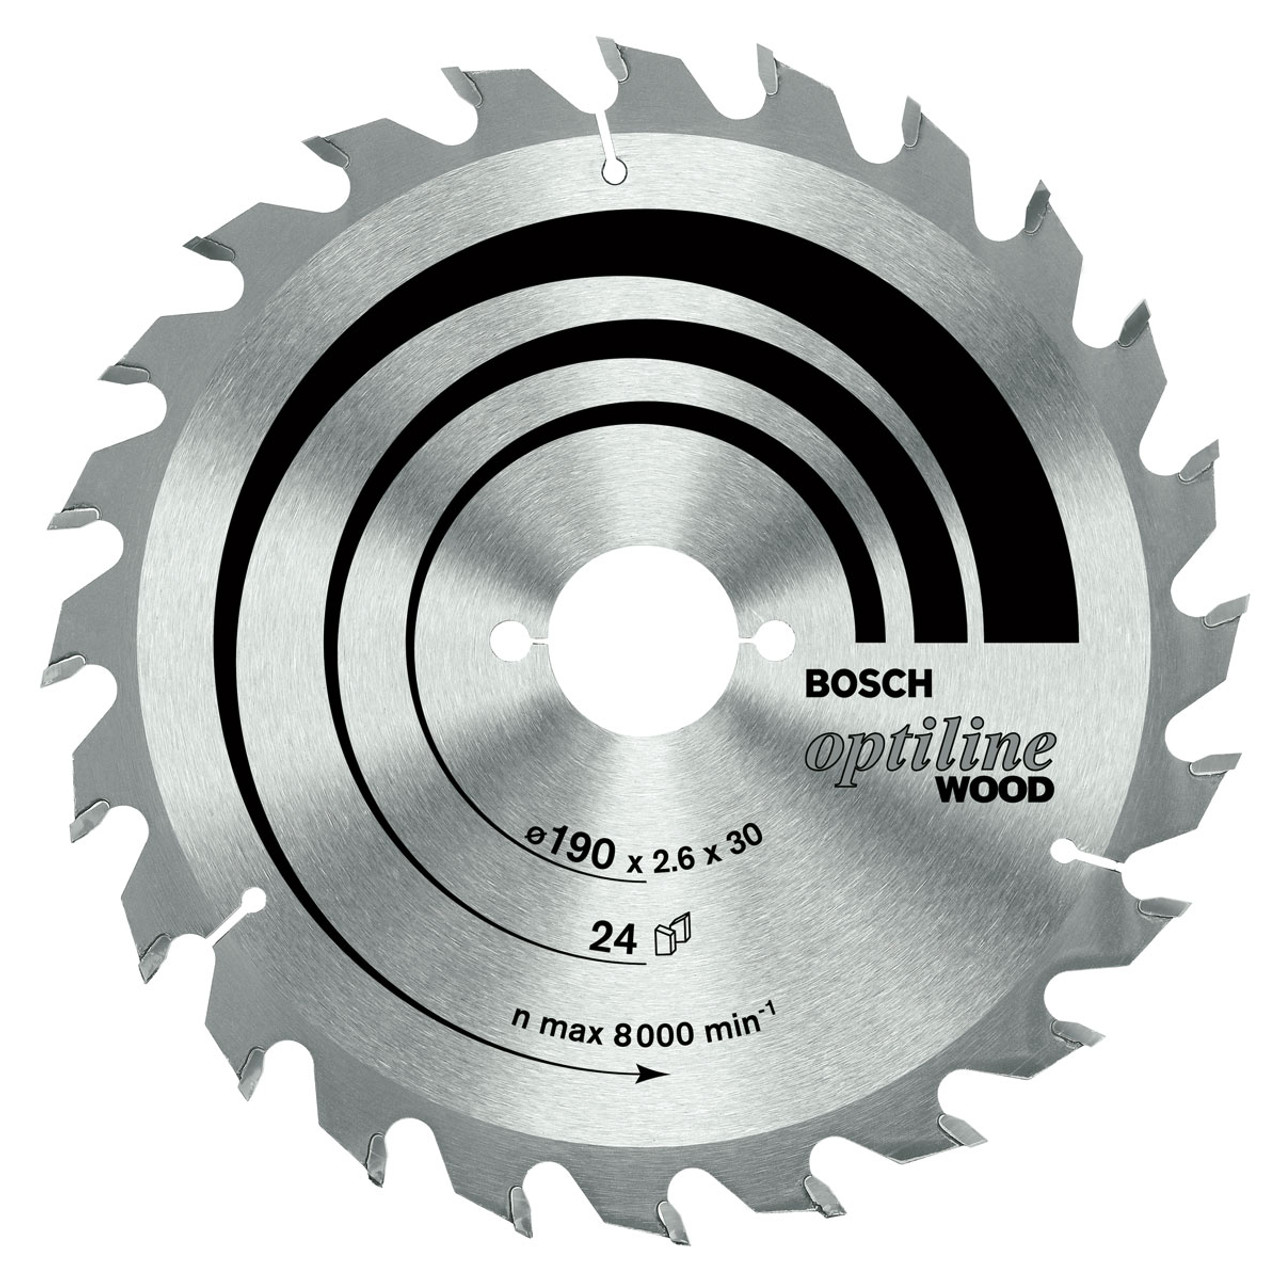 Bosch circular saw blade ecoline wood 160mm 36 teeth gz bosch circular saw blade ecoline wood 160mm 36 teeth greentooth Image collections